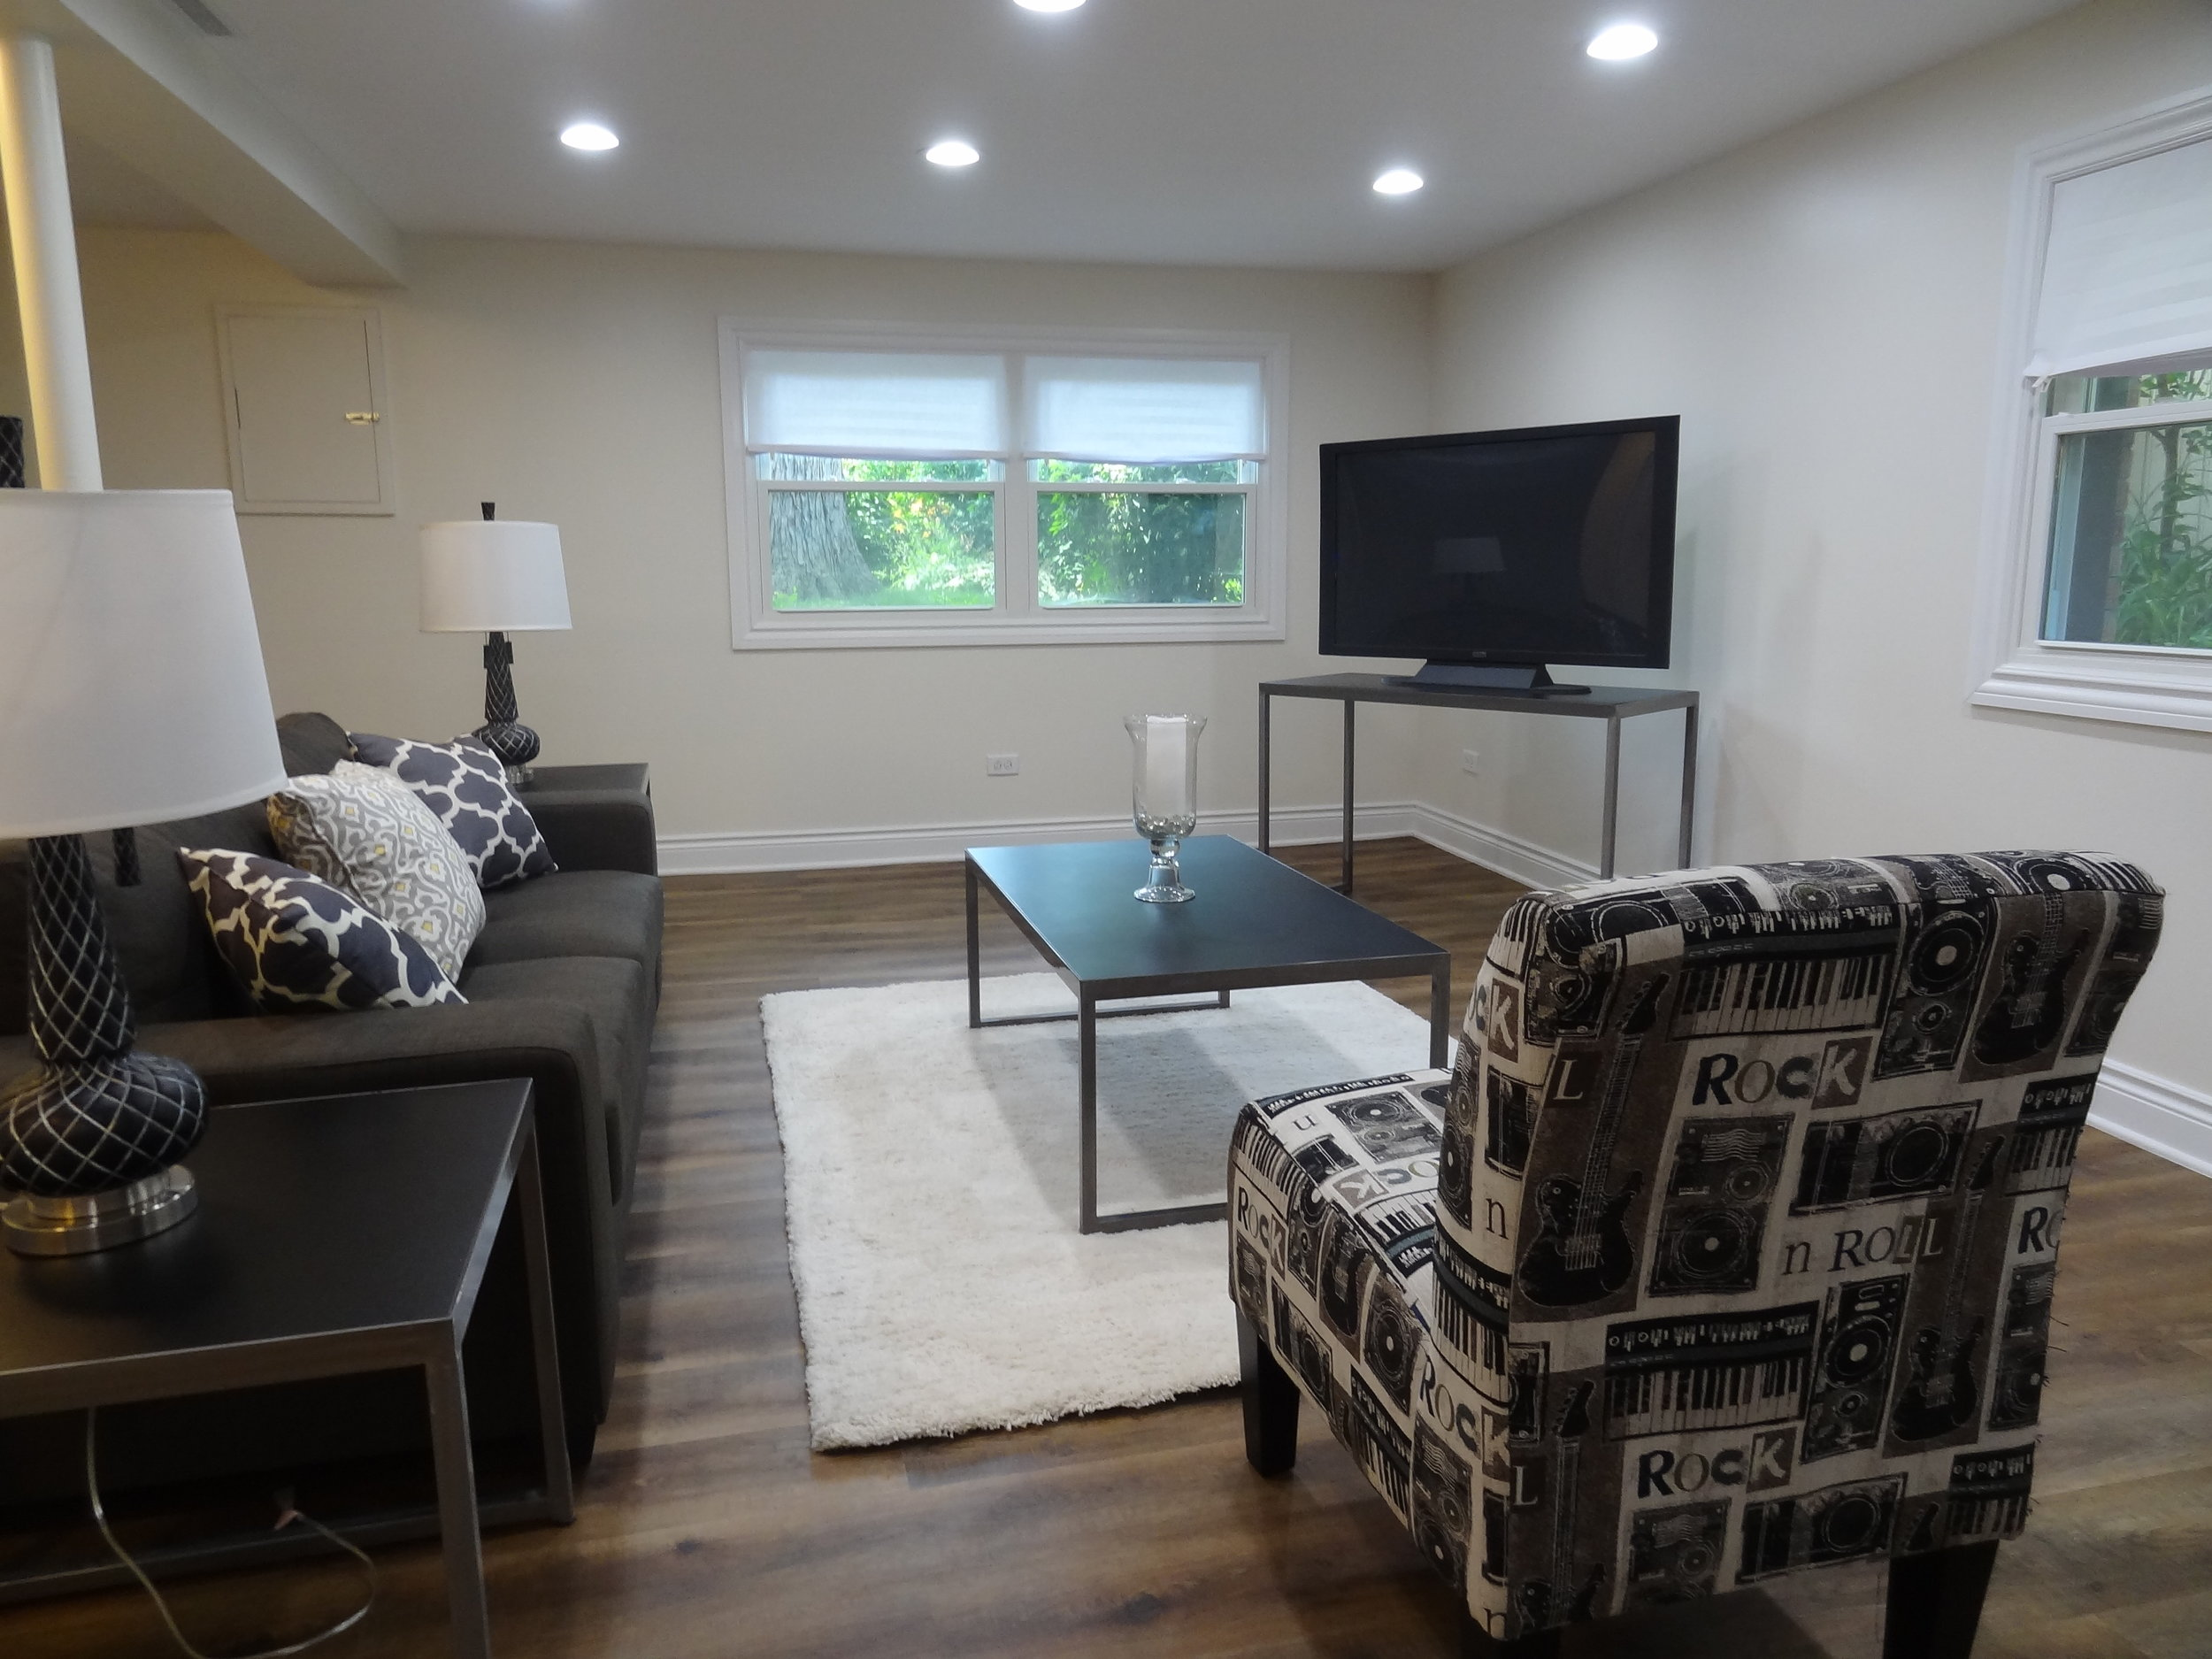 3 Bedroom 2 Bathroom Single Famly Home Ronovation | After | Equity Twins | Oak Lawn, IL | Chicago, IL| Bassment